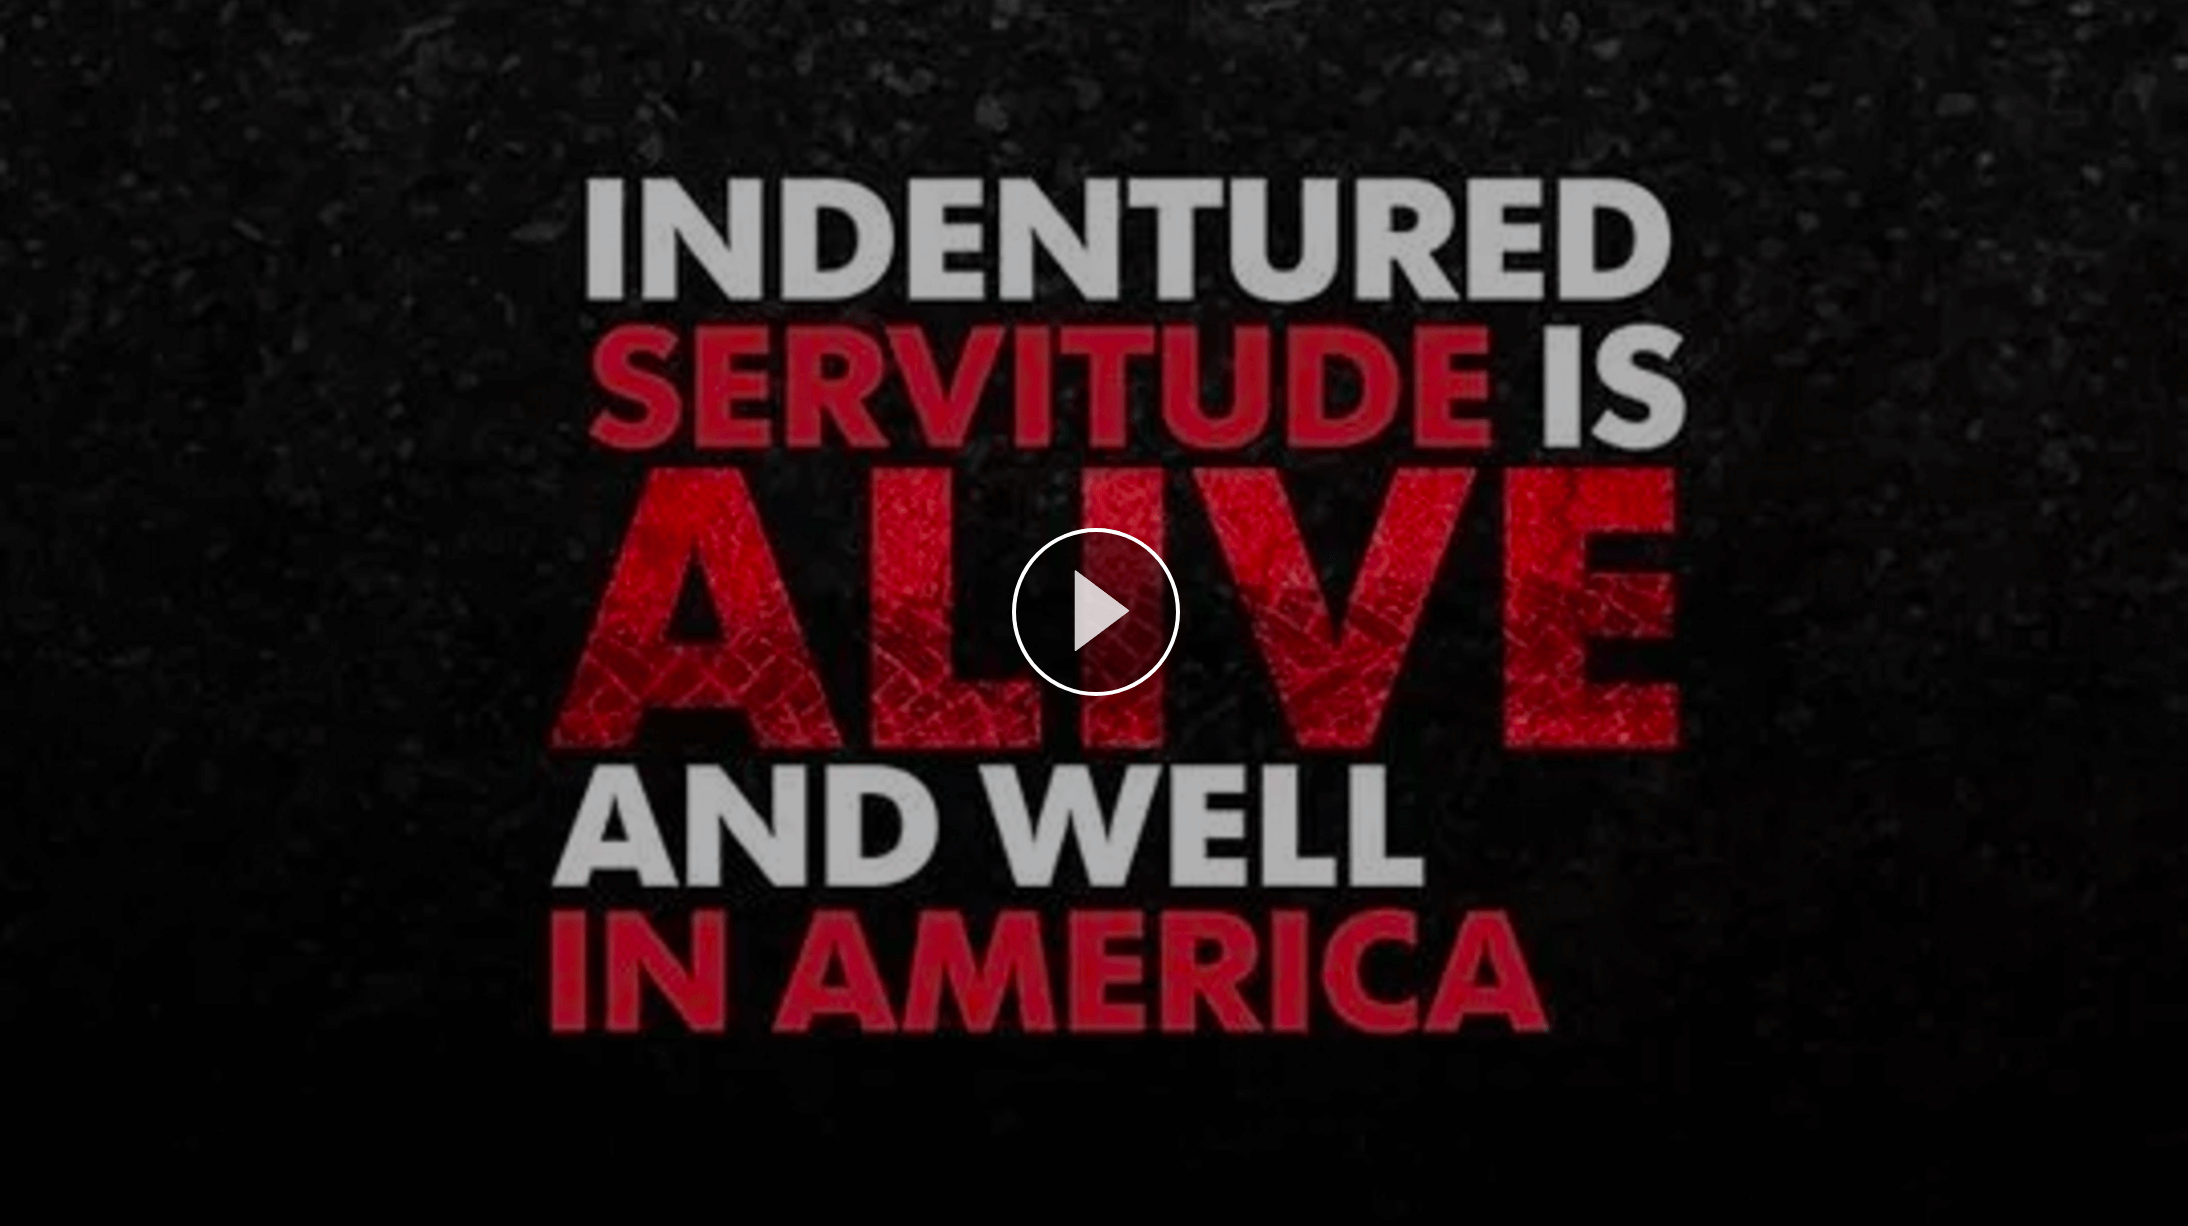 VIDEO: Modern-day Indentured Servants (USA Today)